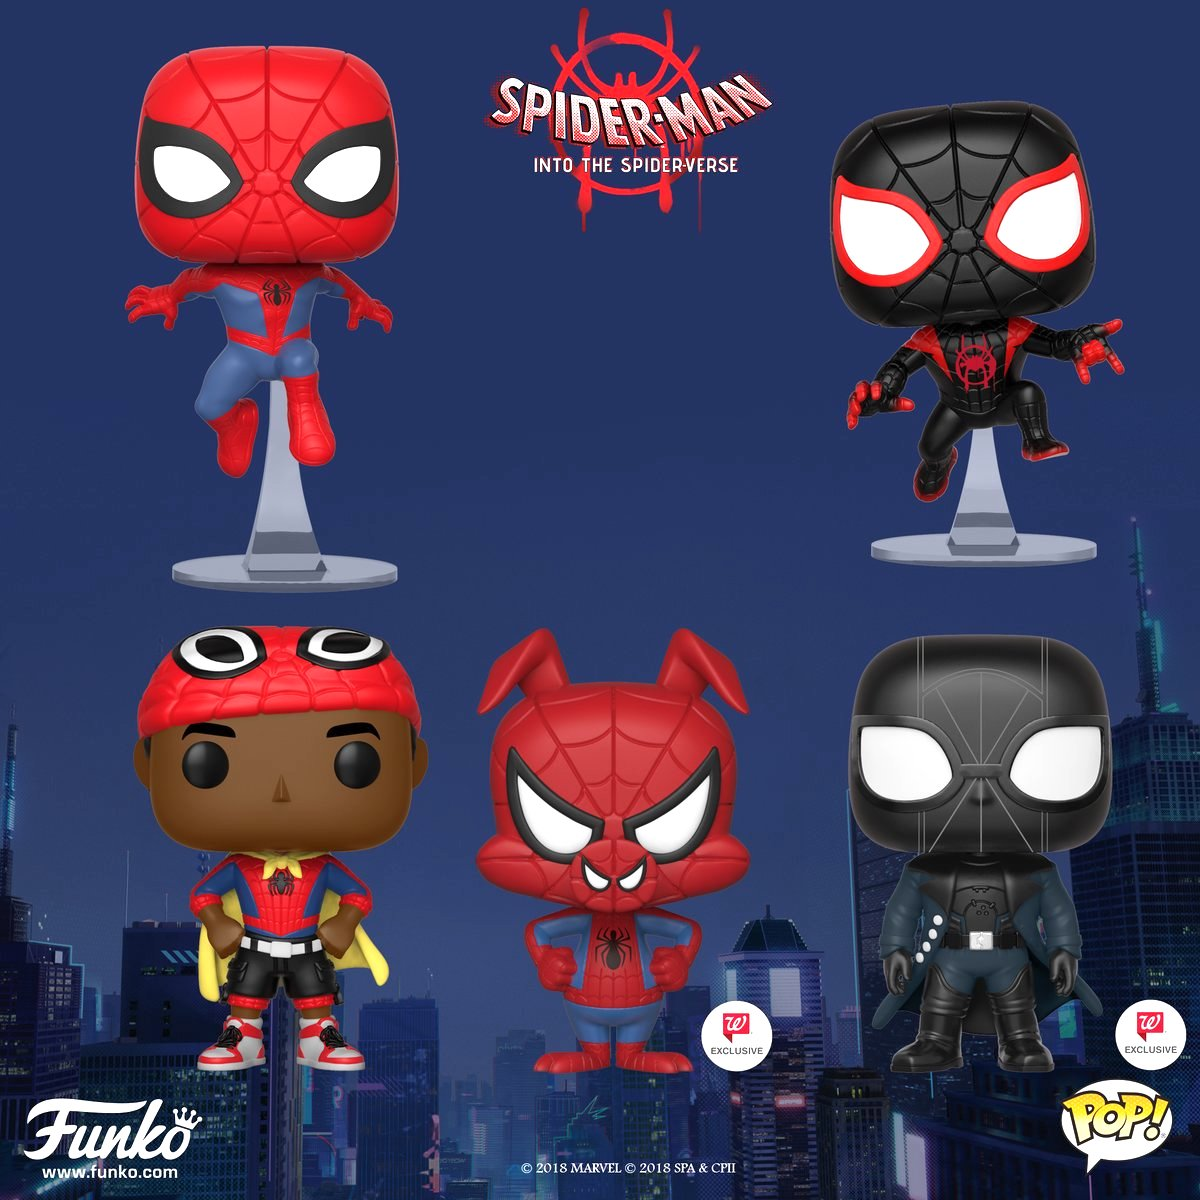 Marvel S Spider Man Into The Spider Verse Animated Film Funko Toys